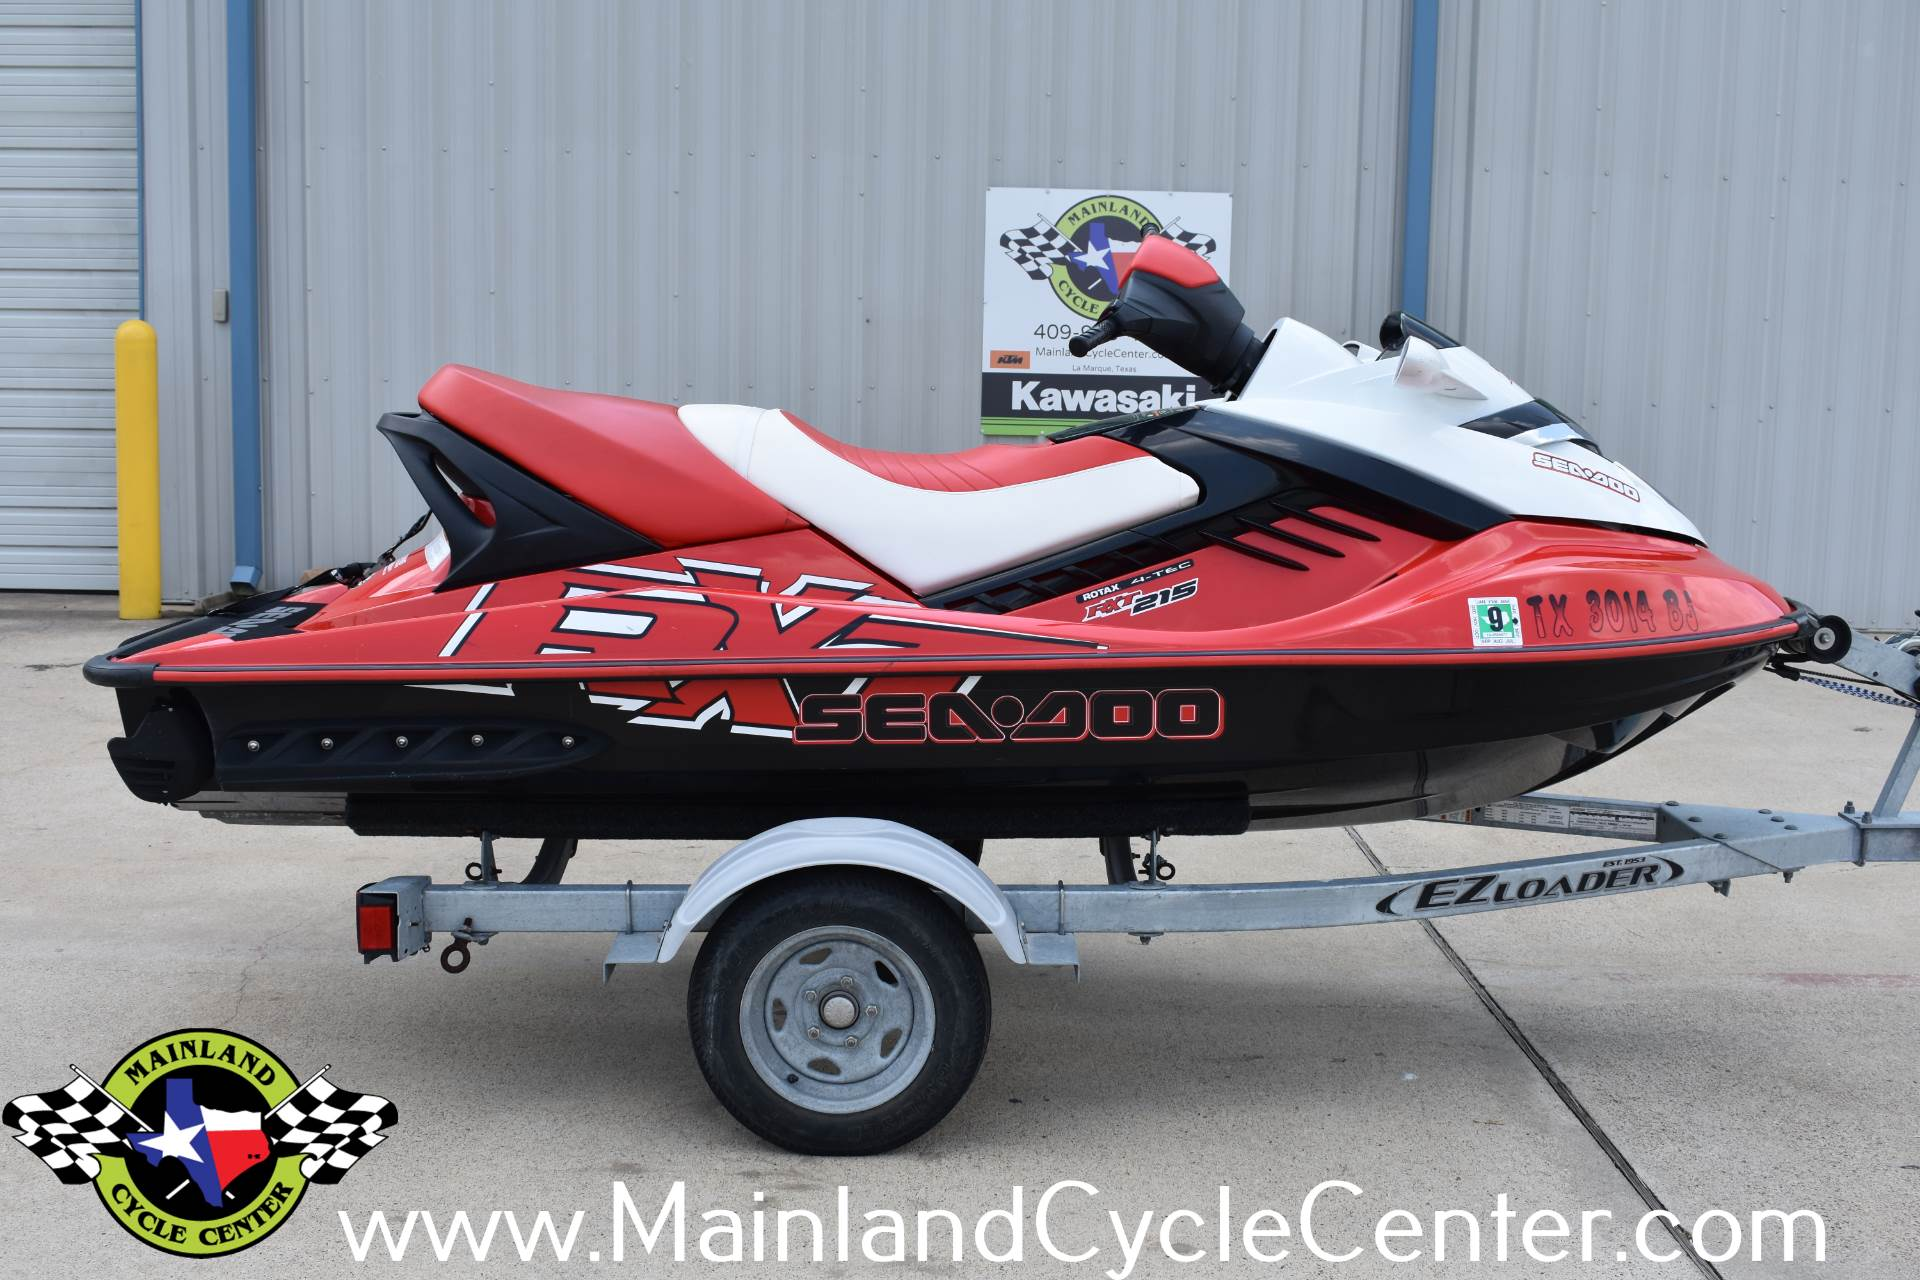 2008 Sea-Doo RXT for sale 1927